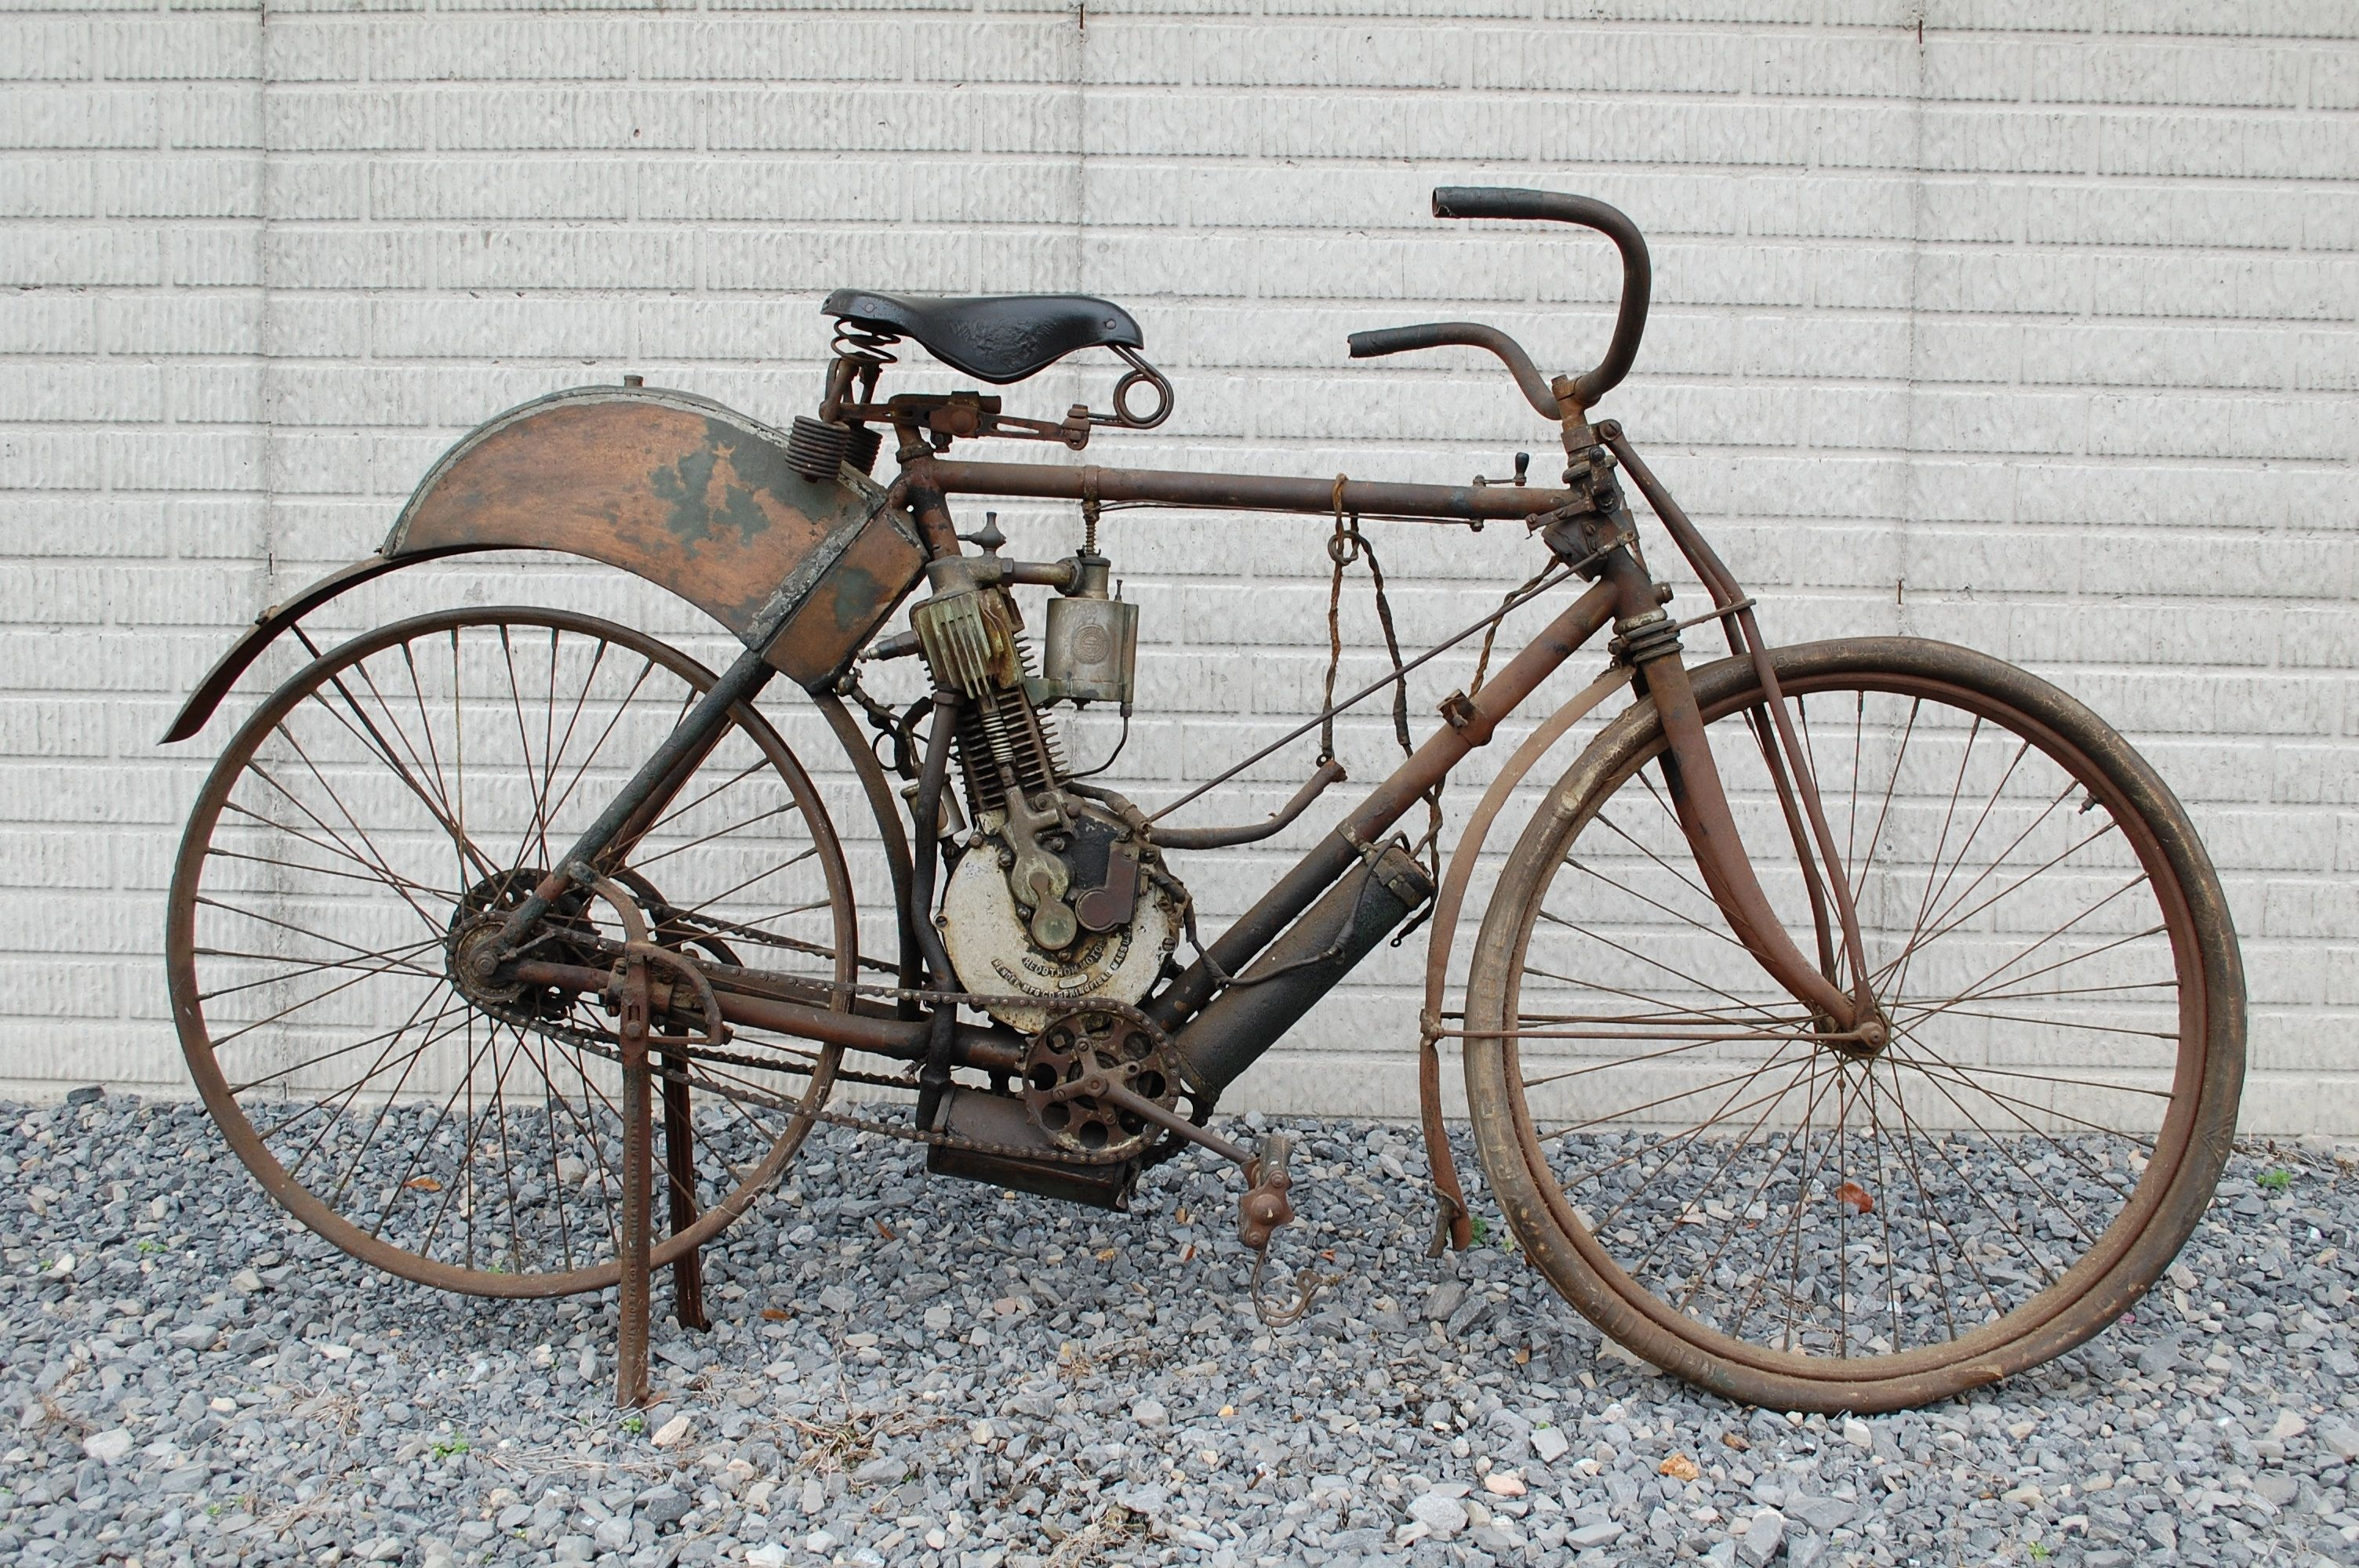 1903 Oldest Indian Motorcycle Indian Motorcycle American Made Motorcycles Motorcycle